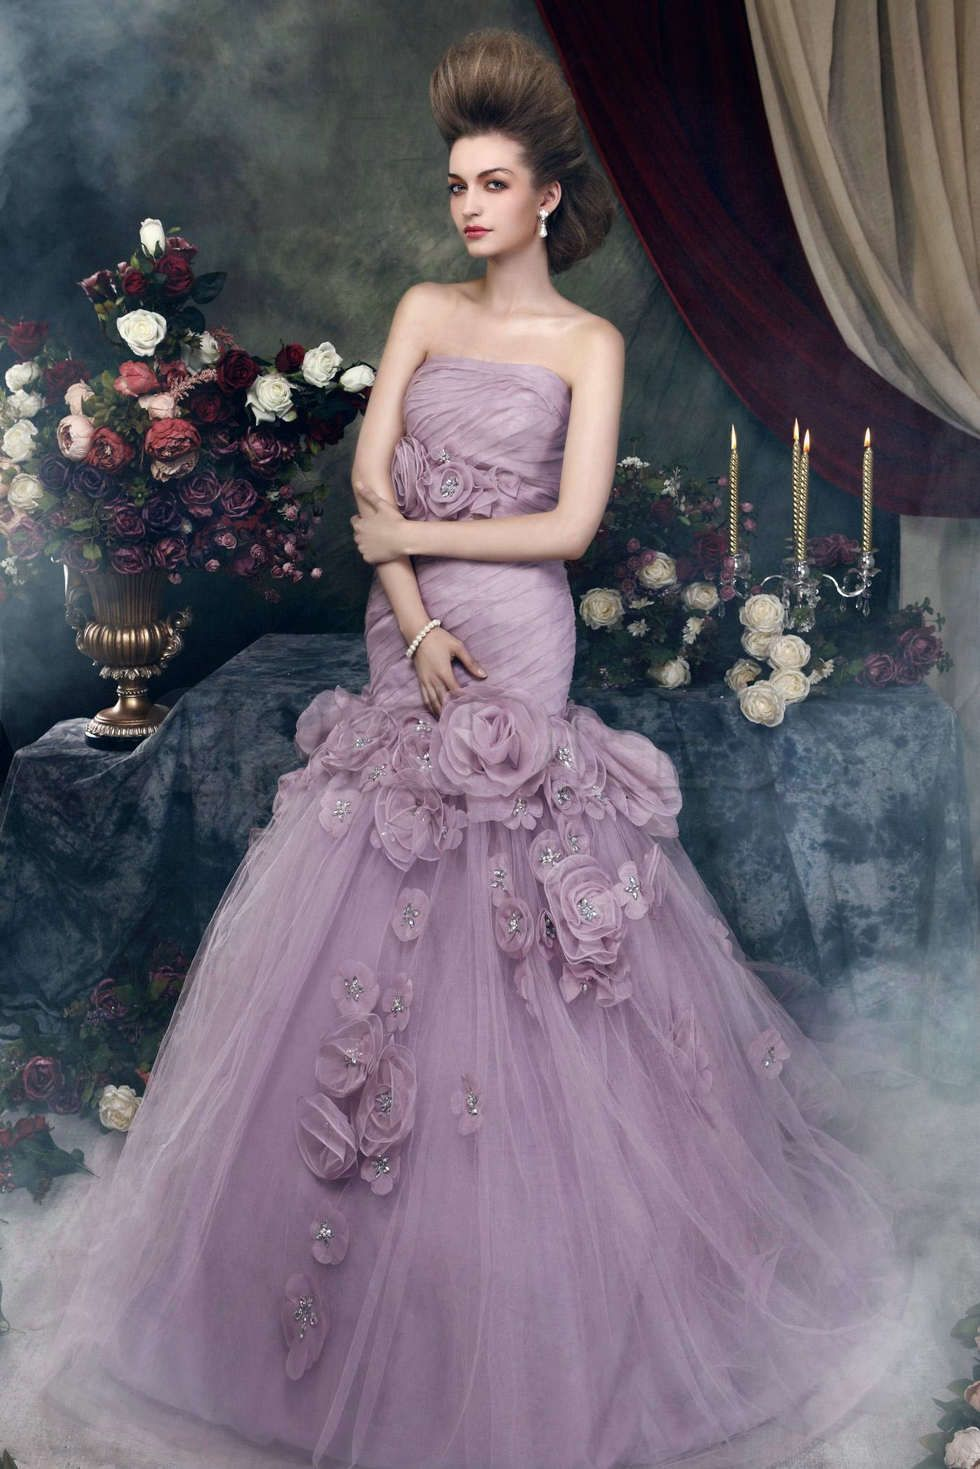 So Charming On A Purple Wedding Gown